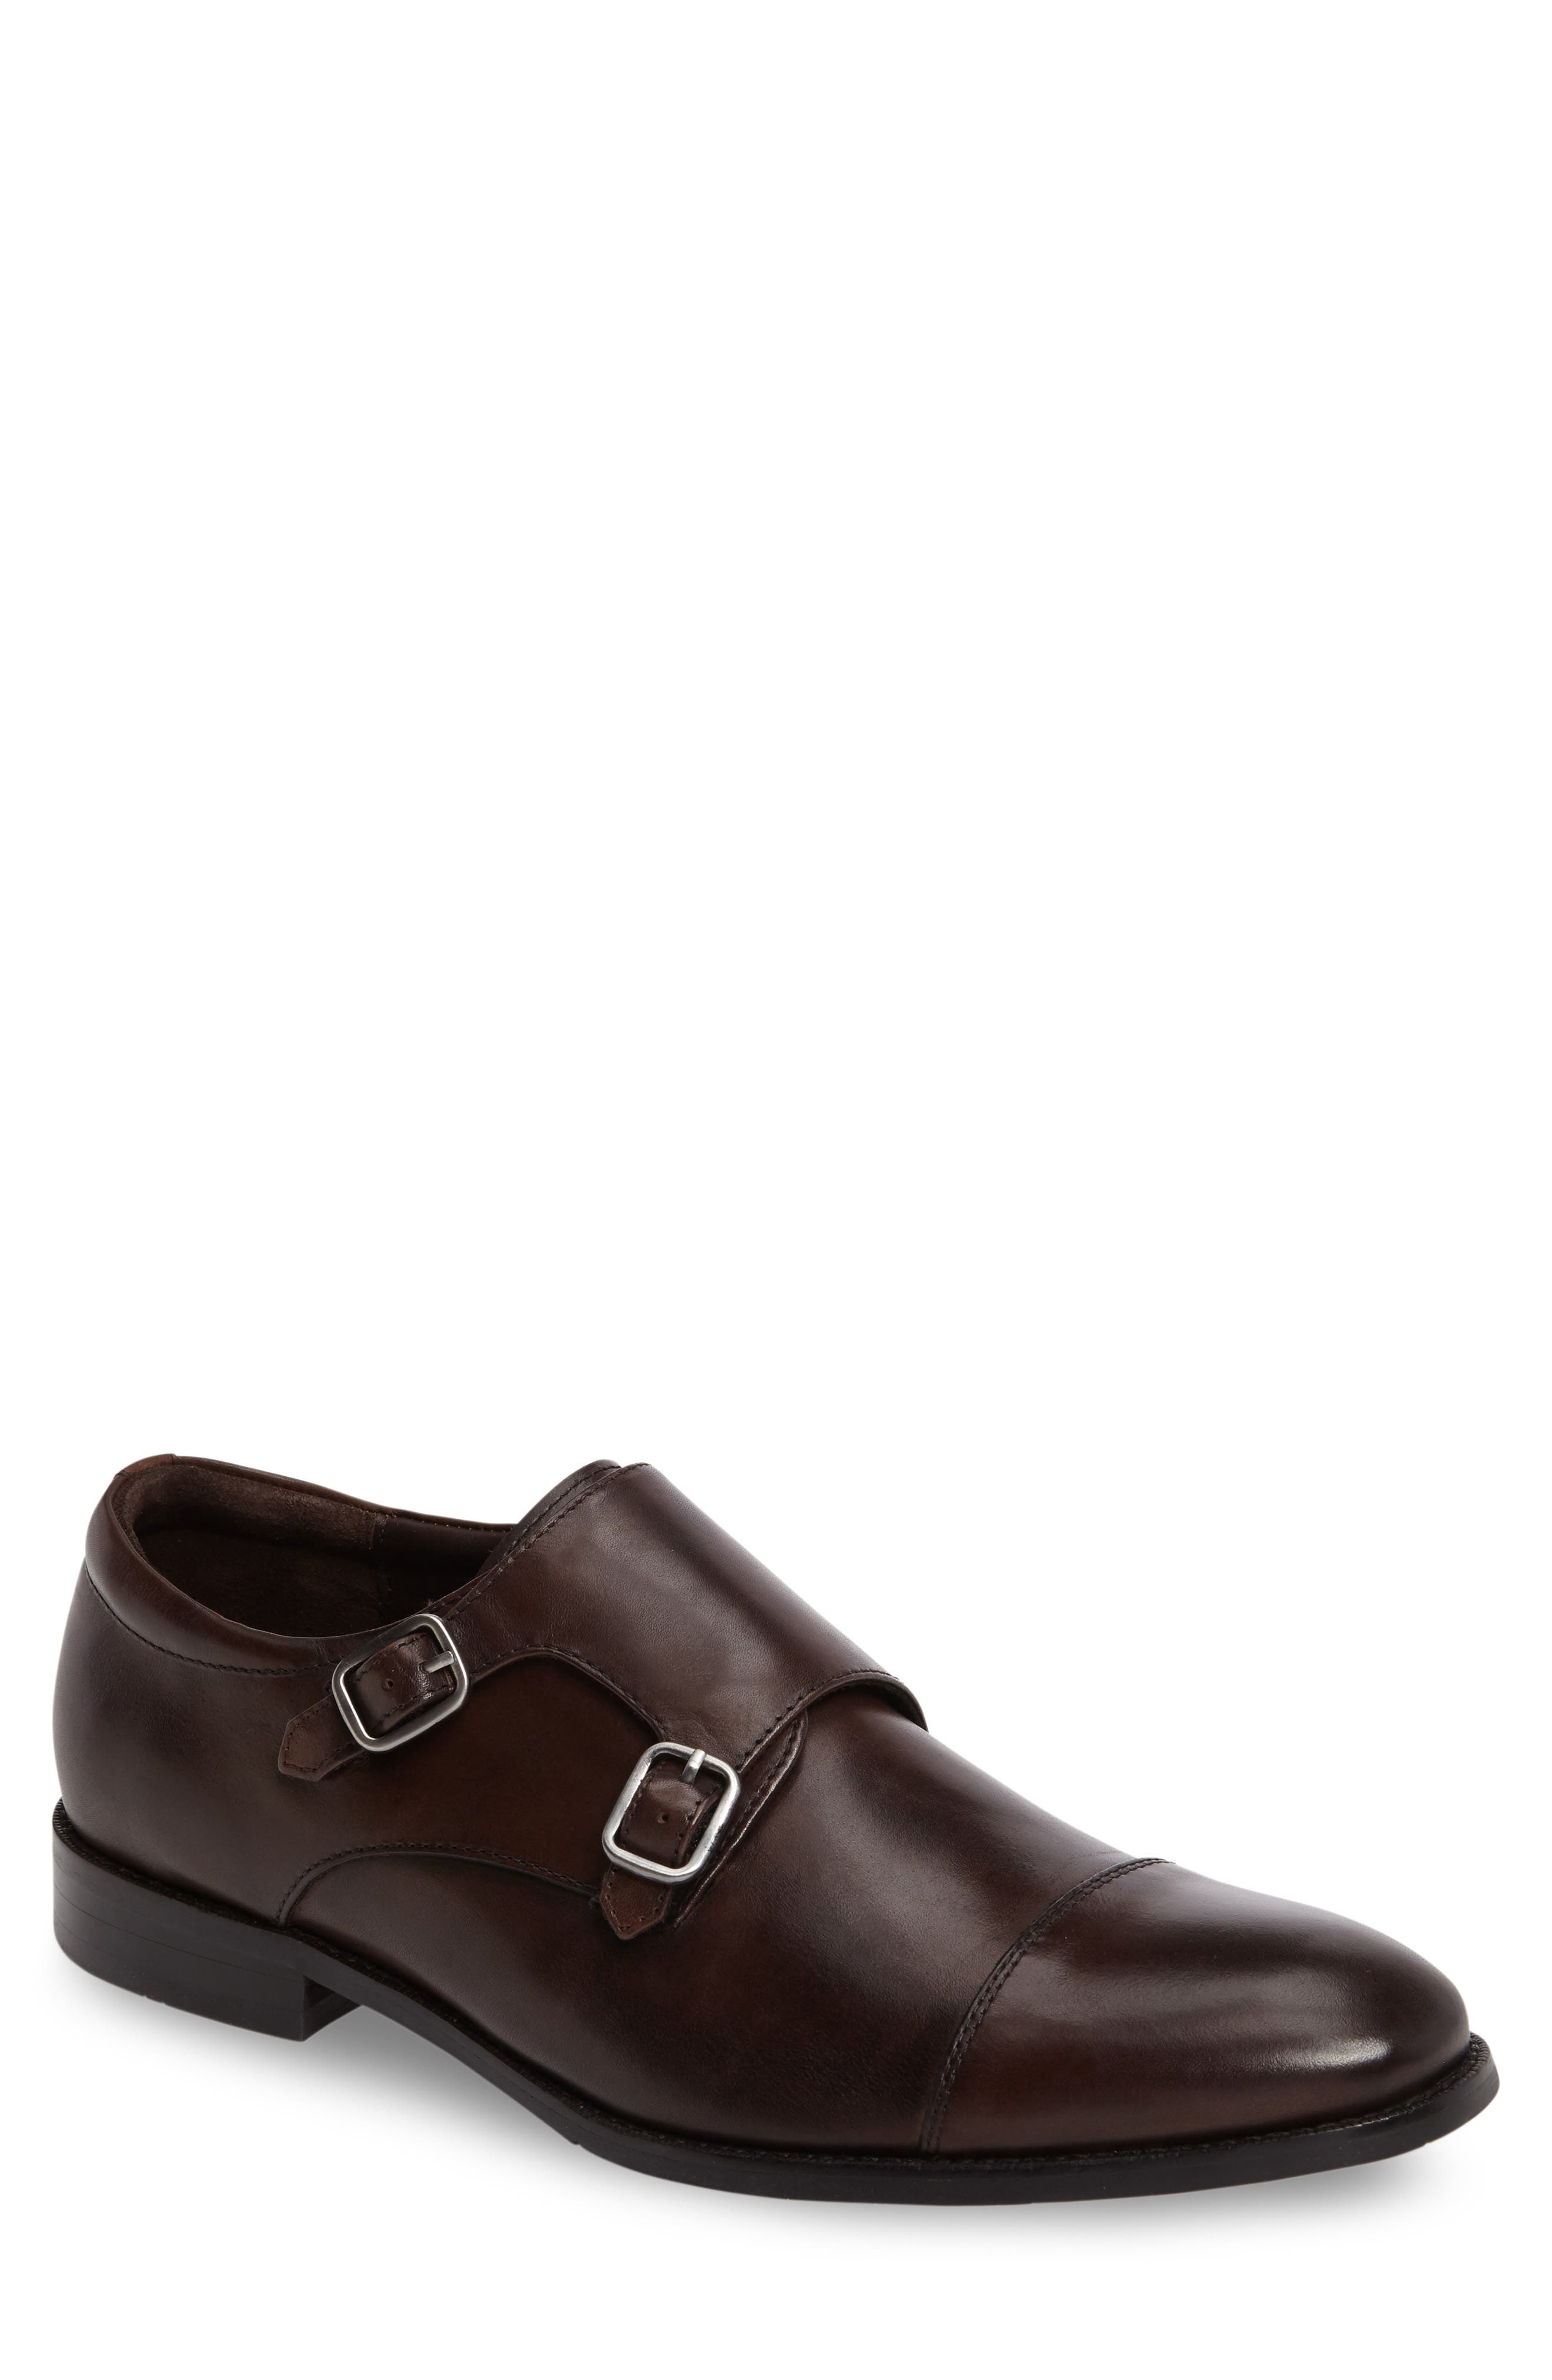 Gordon Rush 'Abbott' Double Monk Strap Shoe (Men)